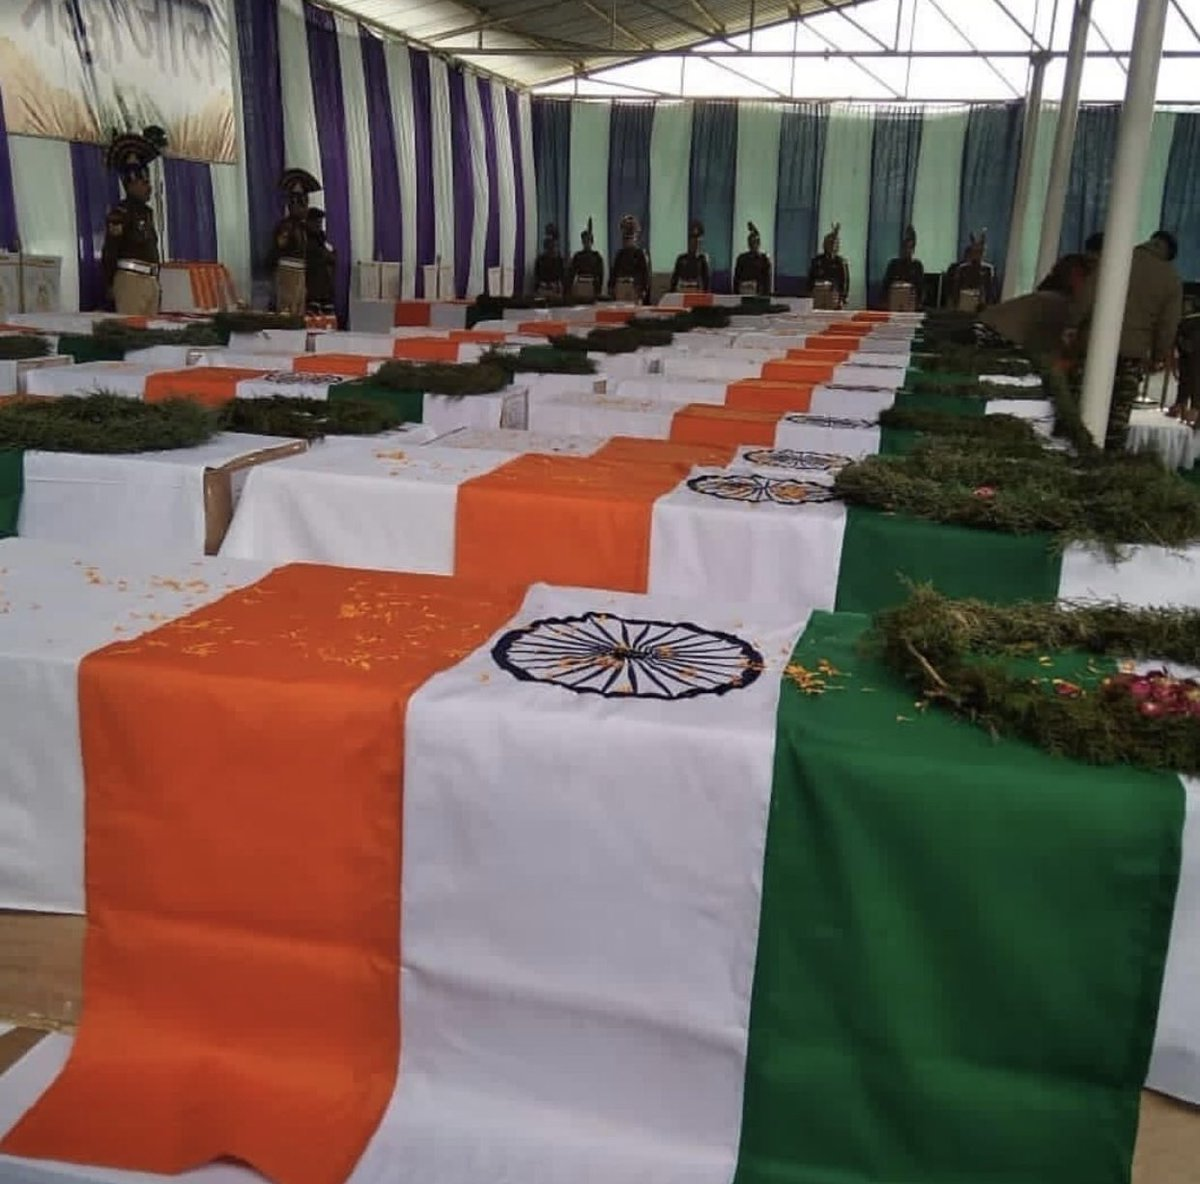 Our martyrs of #PulwamaAttack #RIP #CRPFKashmirAttack Such a cowardly act by our neighbouring country. #Shame  One day their destructive and criminal minds will devour their own country and their very own people. N we shall see them burn in their own fire. #JaiHind